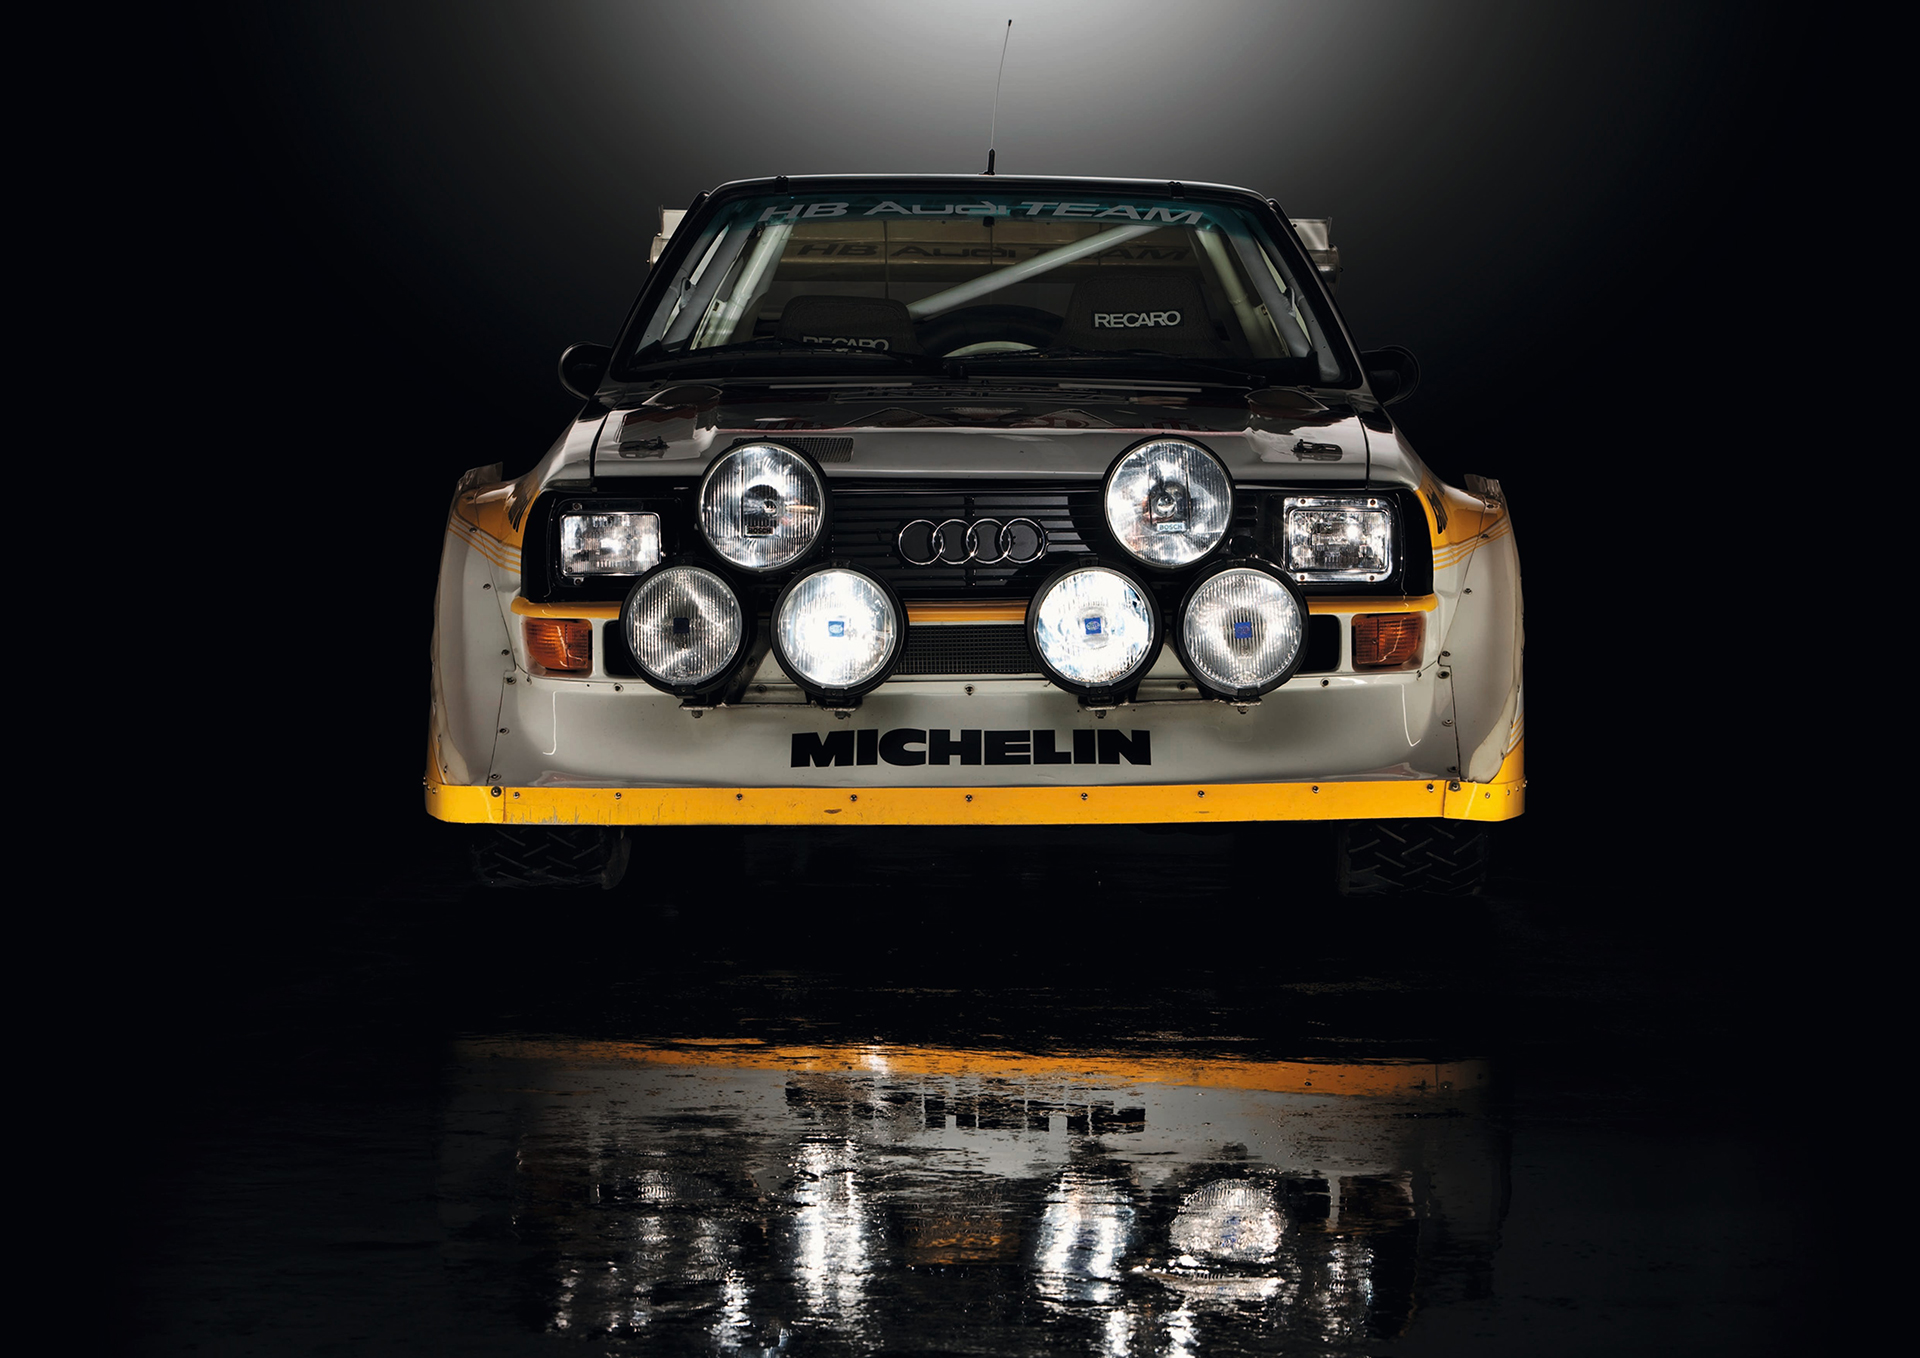 Audi Sport quattro S1 - FIA Group B Rally Car - 1985 - 1986 - front / avant